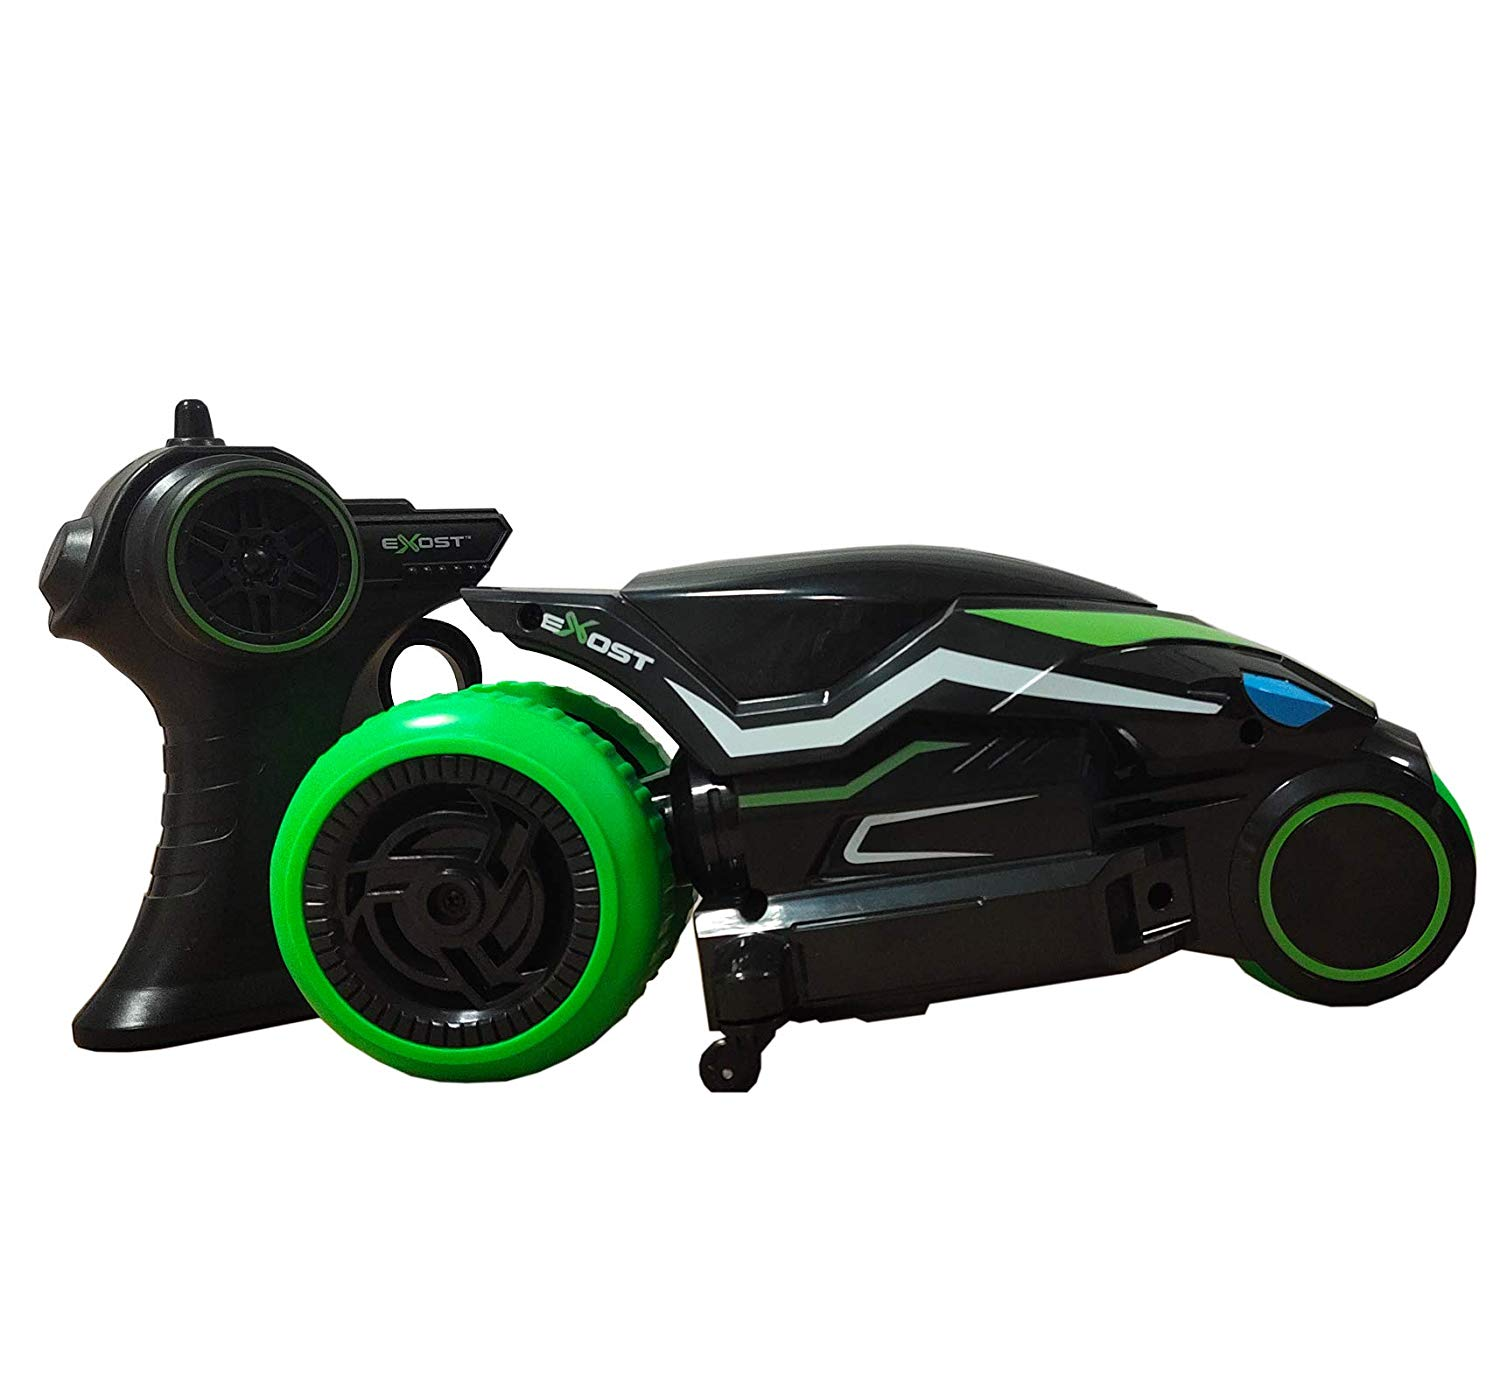 remote controlled motorcycle motodrift exost silverlit